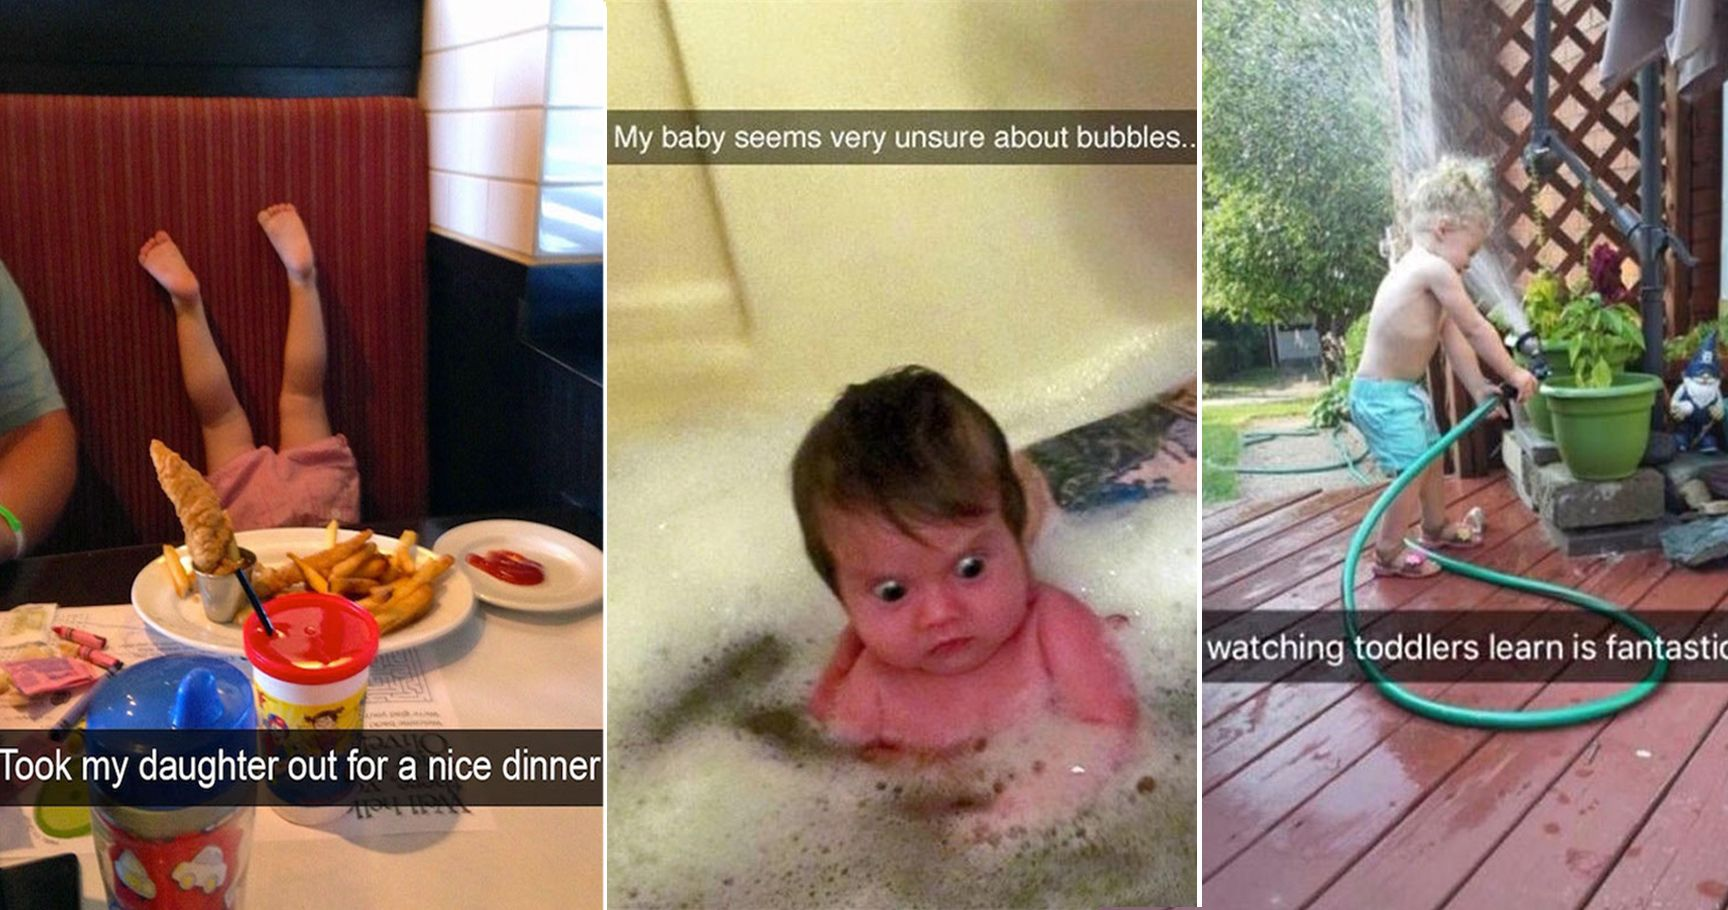 15 Ridiculous Snaps From Parents That Made Us LOL